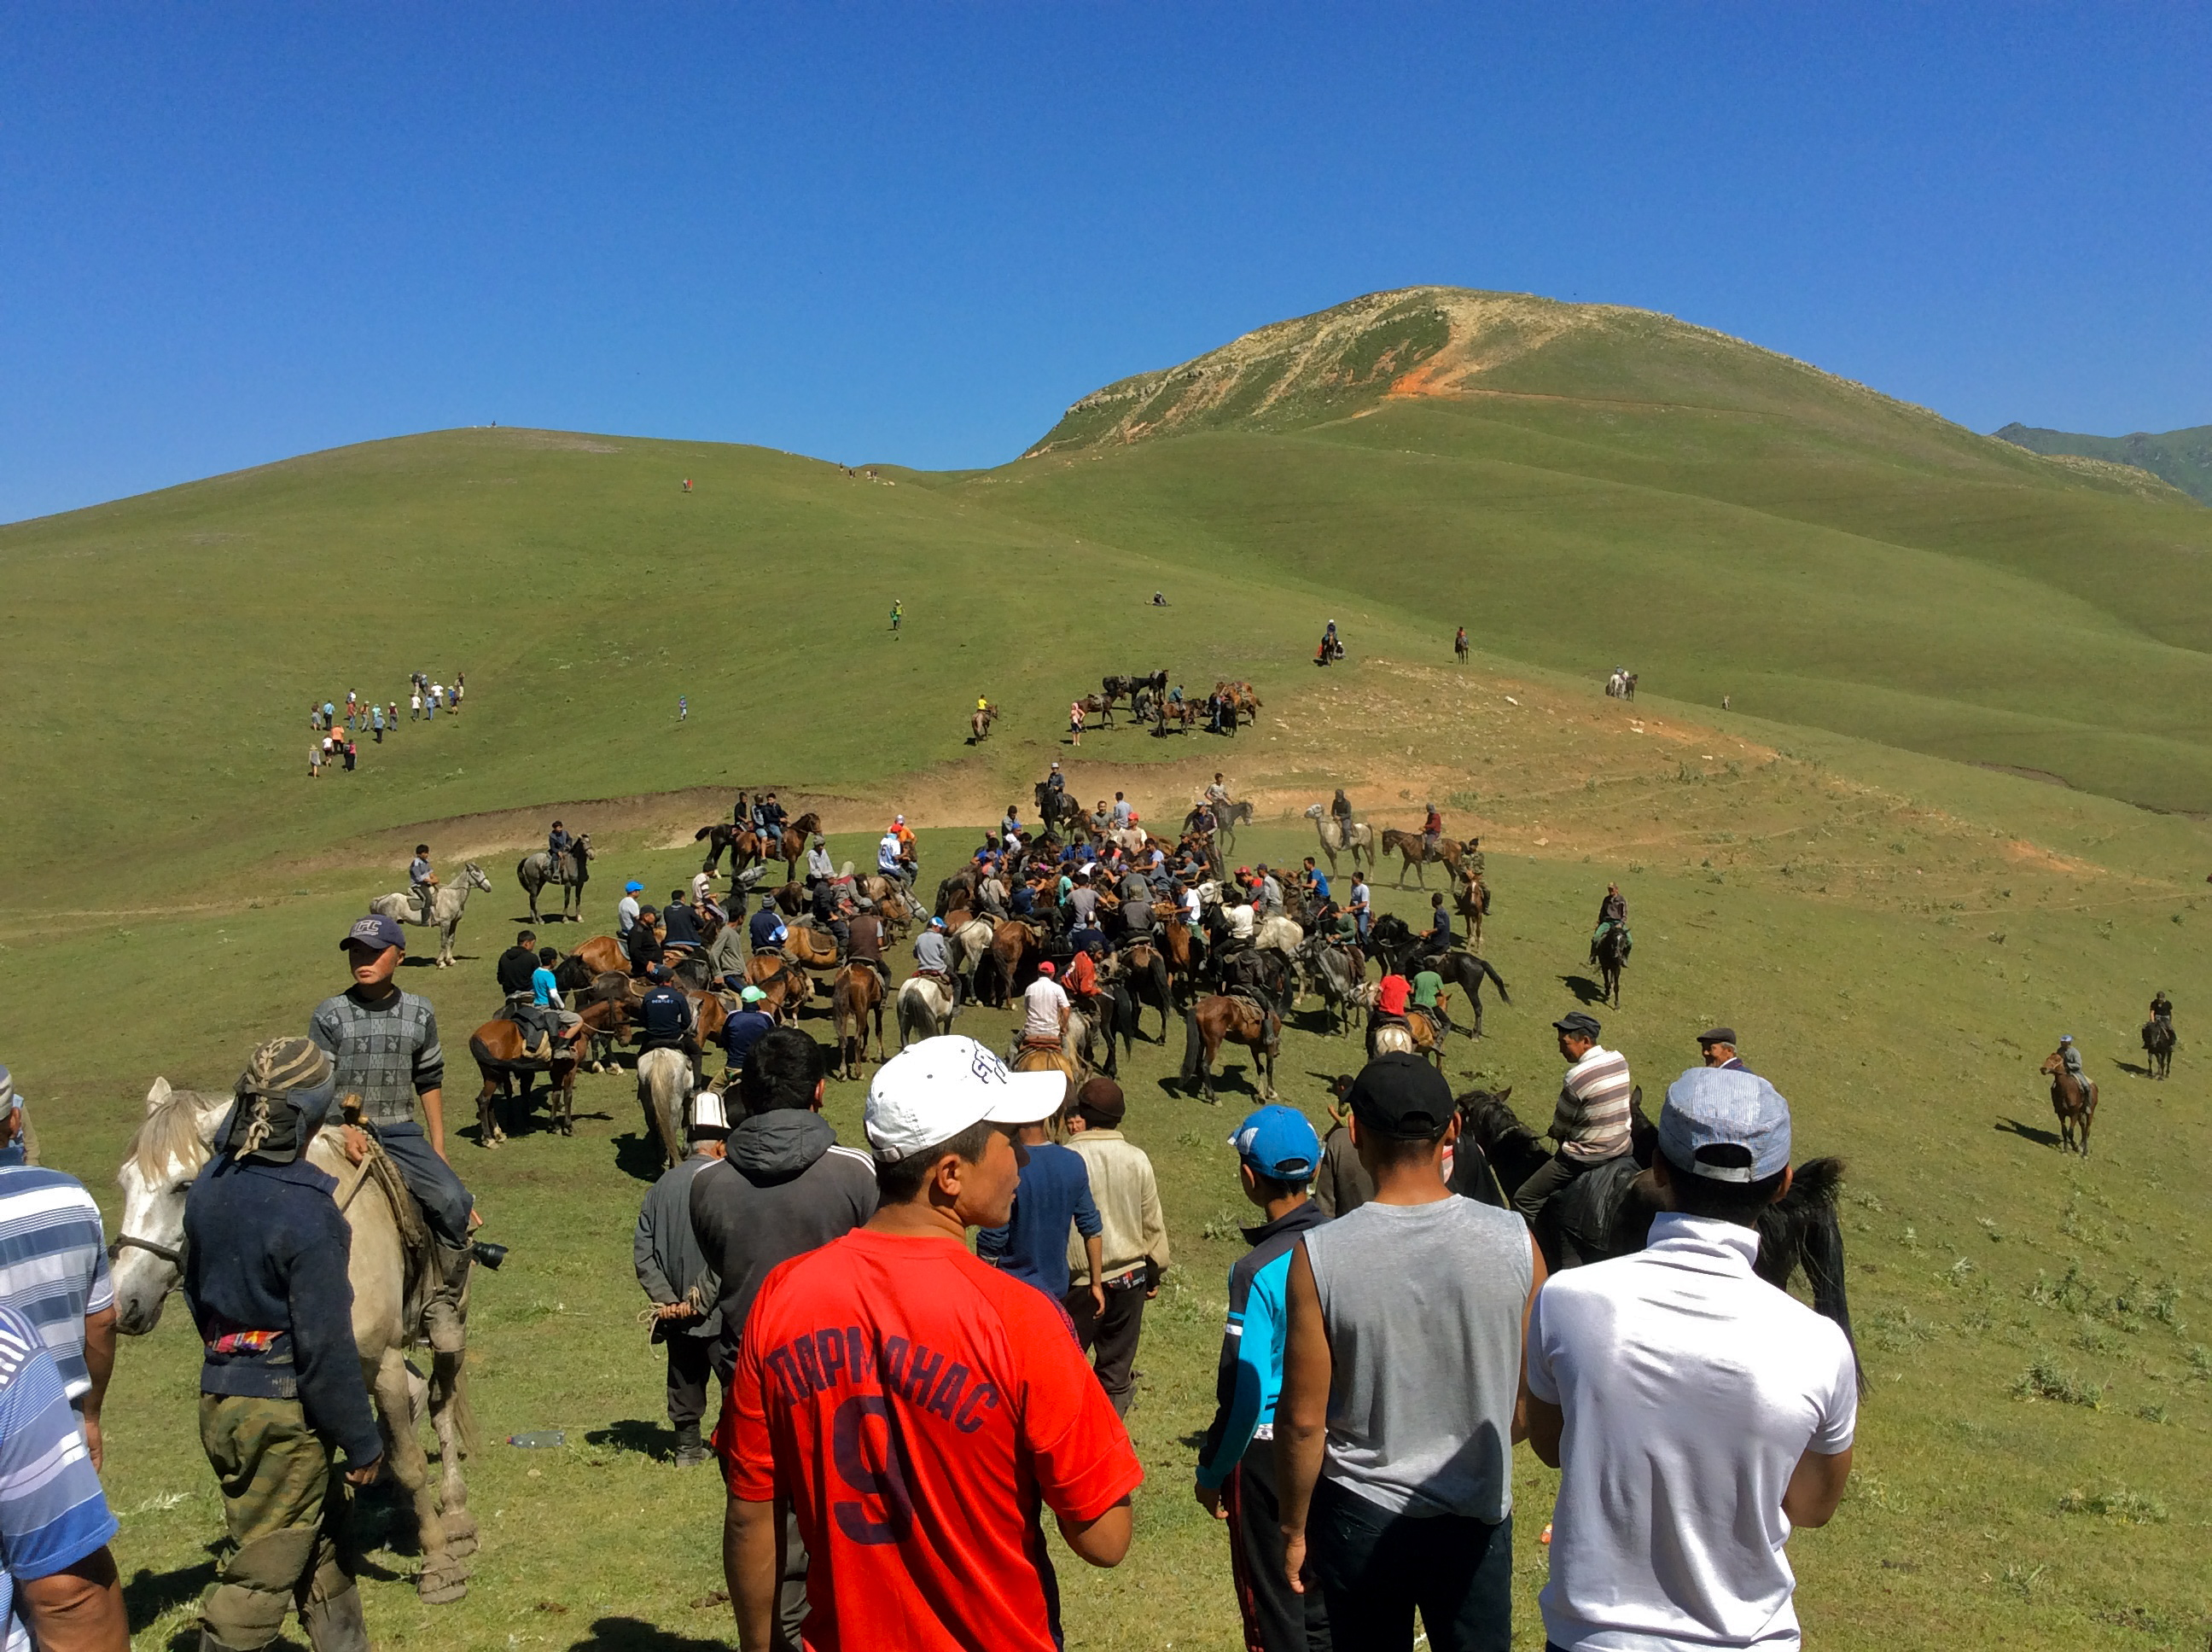 Kyrgyzstan culture with horse games, nomadic traditions